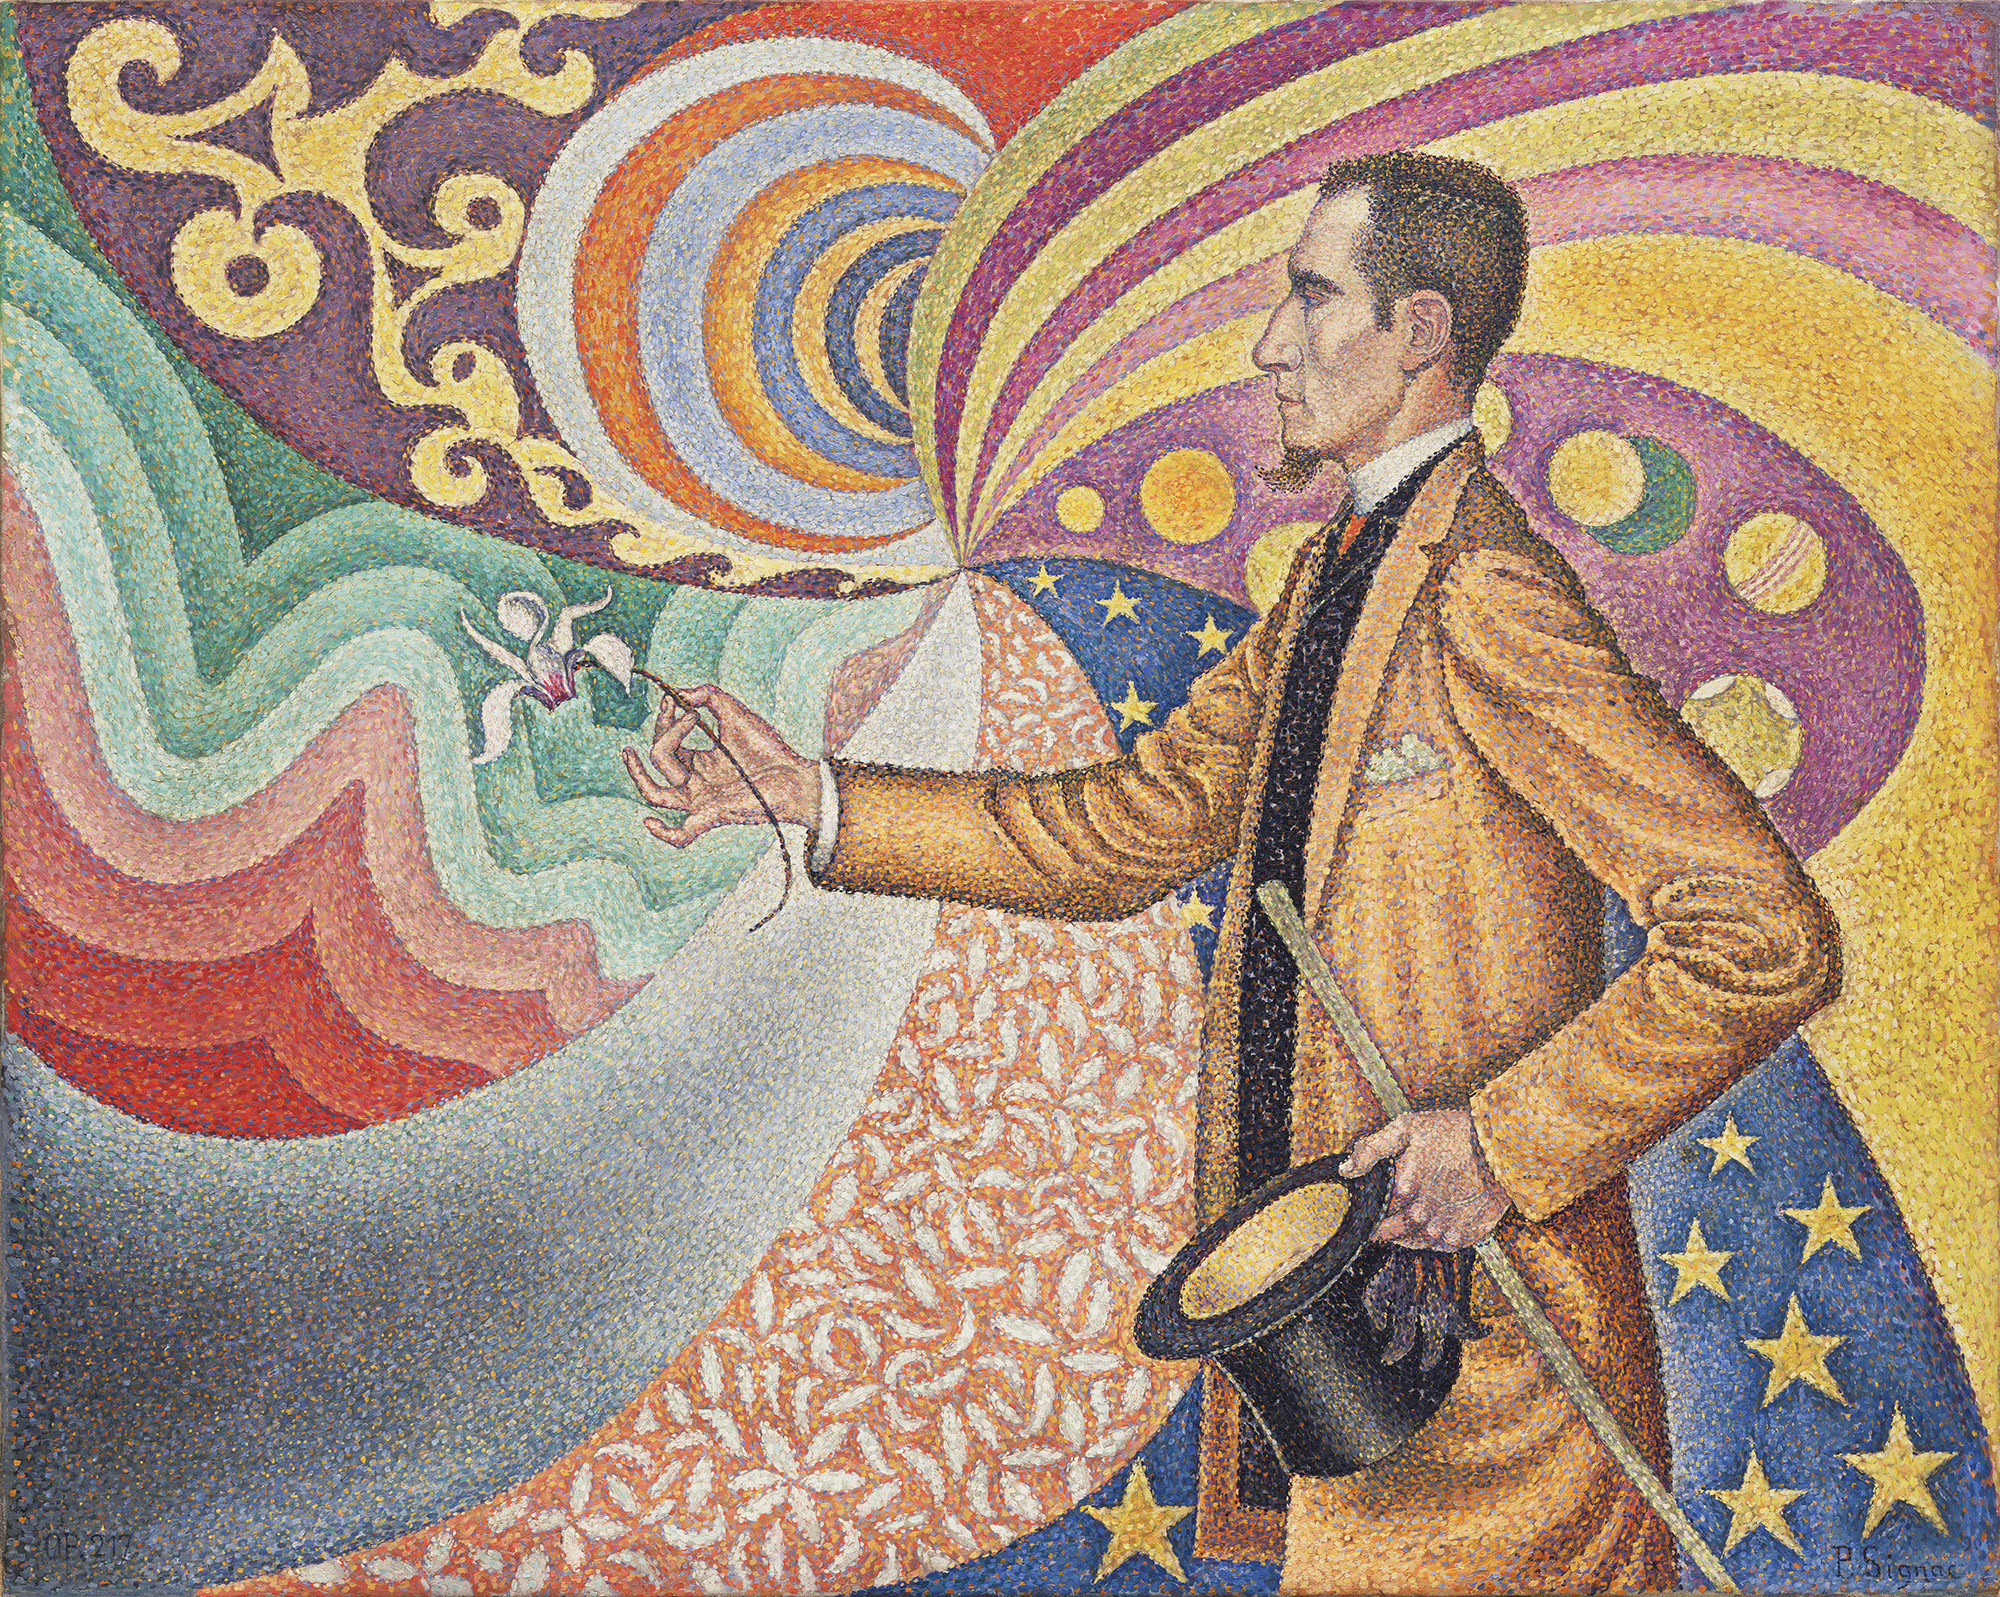 Paul Signac. Opus 217. Against the Enamel of a Background Rhythmic with Beats and Angles, Tones, and Tints, Portrait of M. Félix Fénéon in 1890. 1890. Oil on canvas, 29 × 36 1/2″ (73.5 × 92.5 cm). Fractional gift of Mr. and Mrs. David Rockefeller. © 2009 Artists Rights Society (ARS), New York/ADAGP, Paris